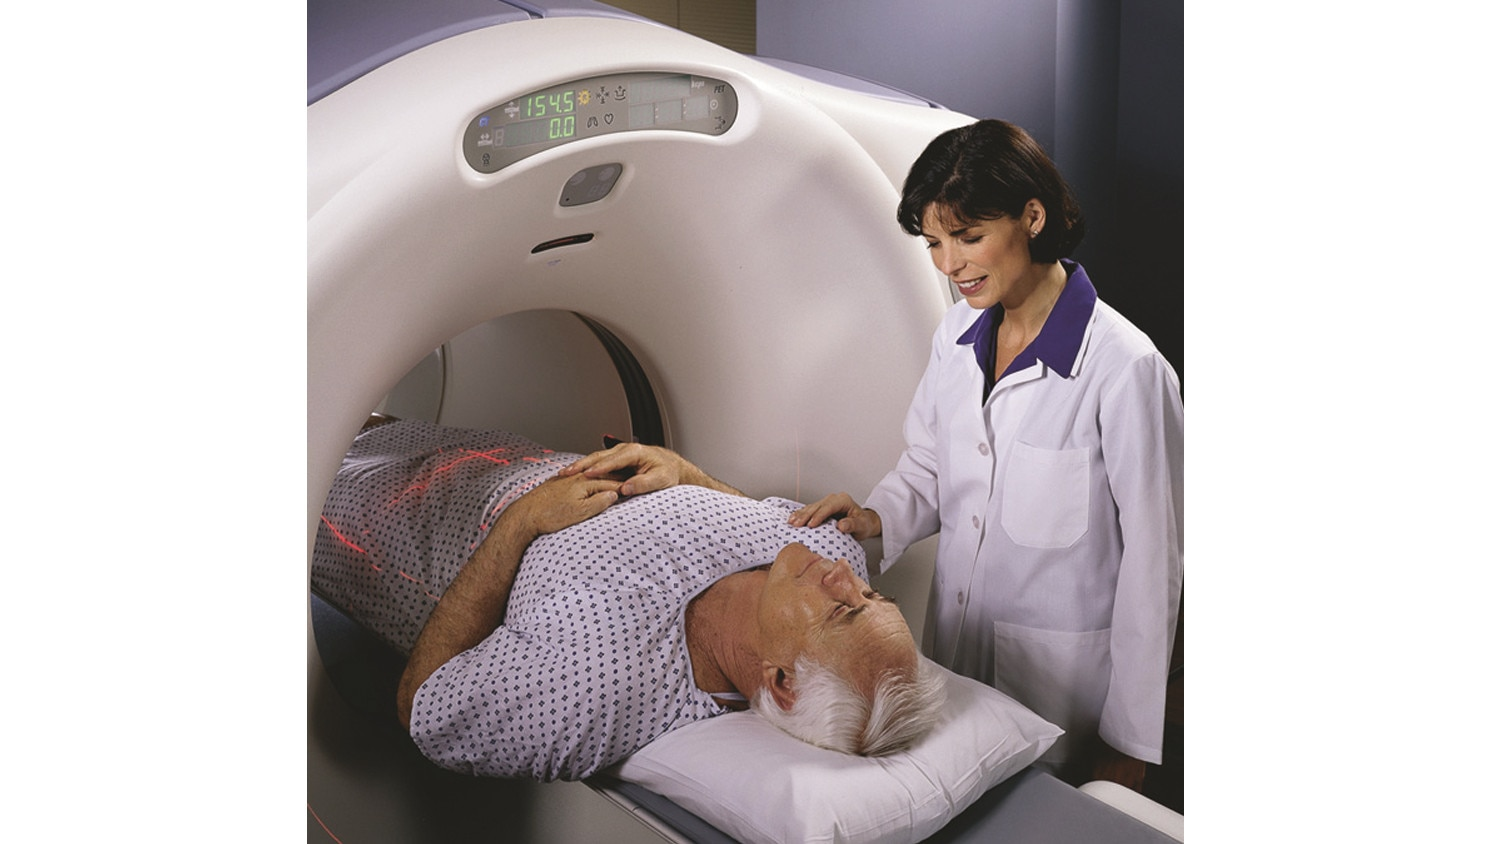 education-product-education-clinical-tip-applications-pet-ct-pet_dst_product2.jpg